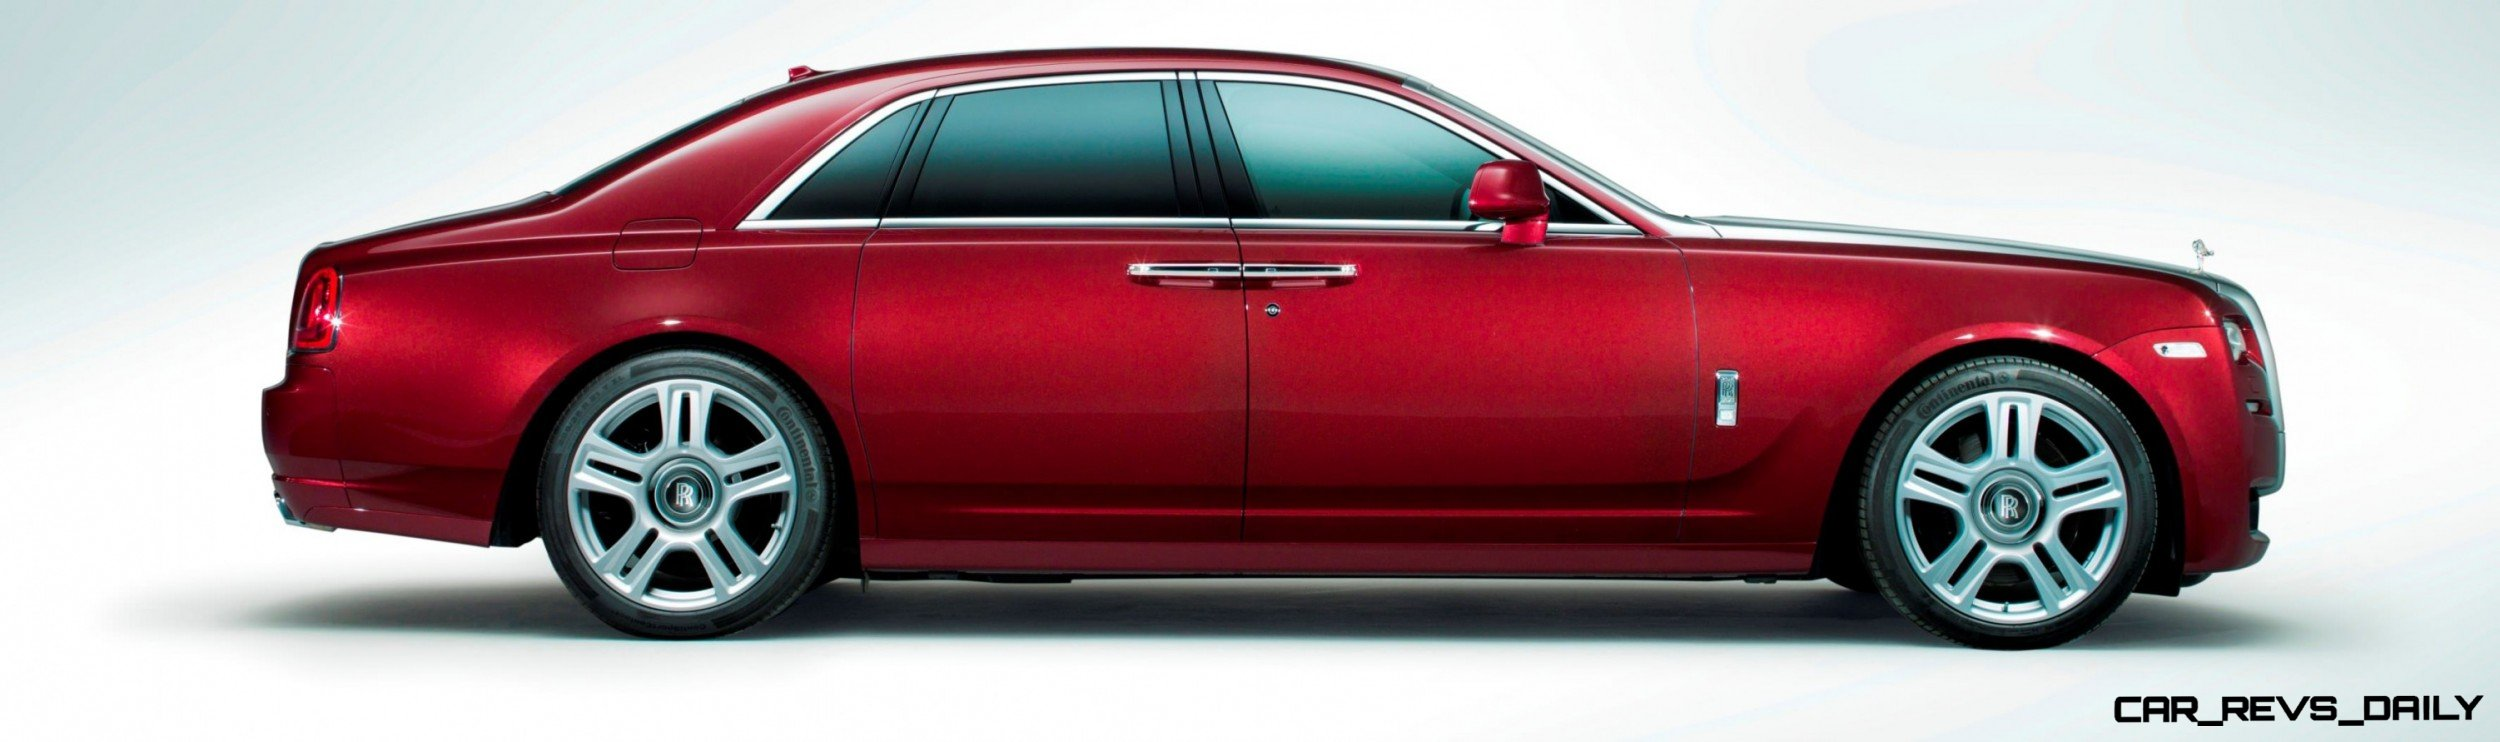 2015 Rolls-Royce GHOST Series II -- Geneva Debut 3